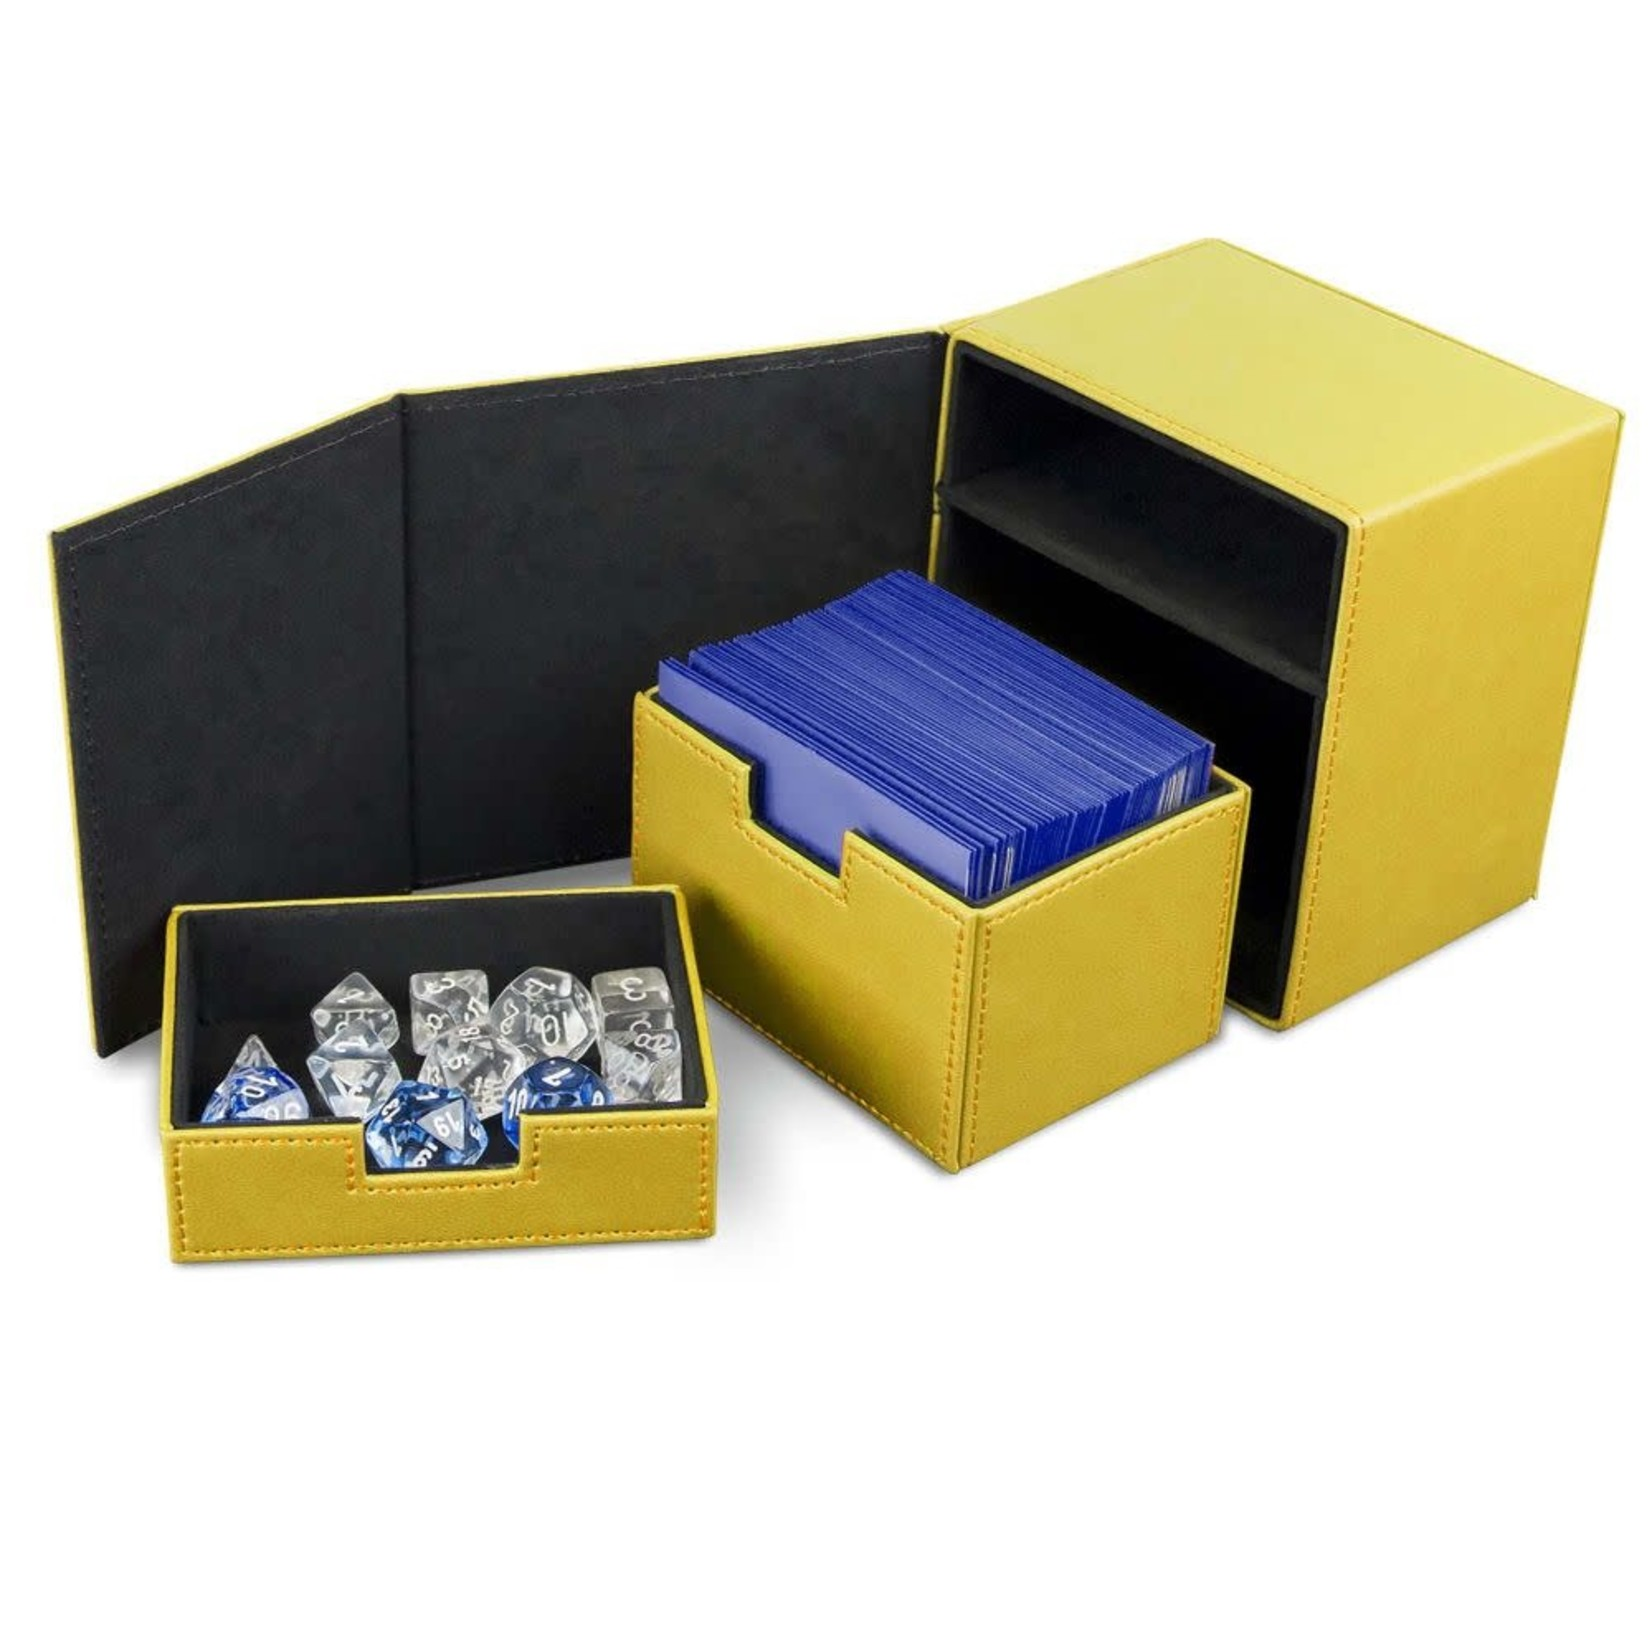 BCW Deck Box: BCW Commander: Yellow